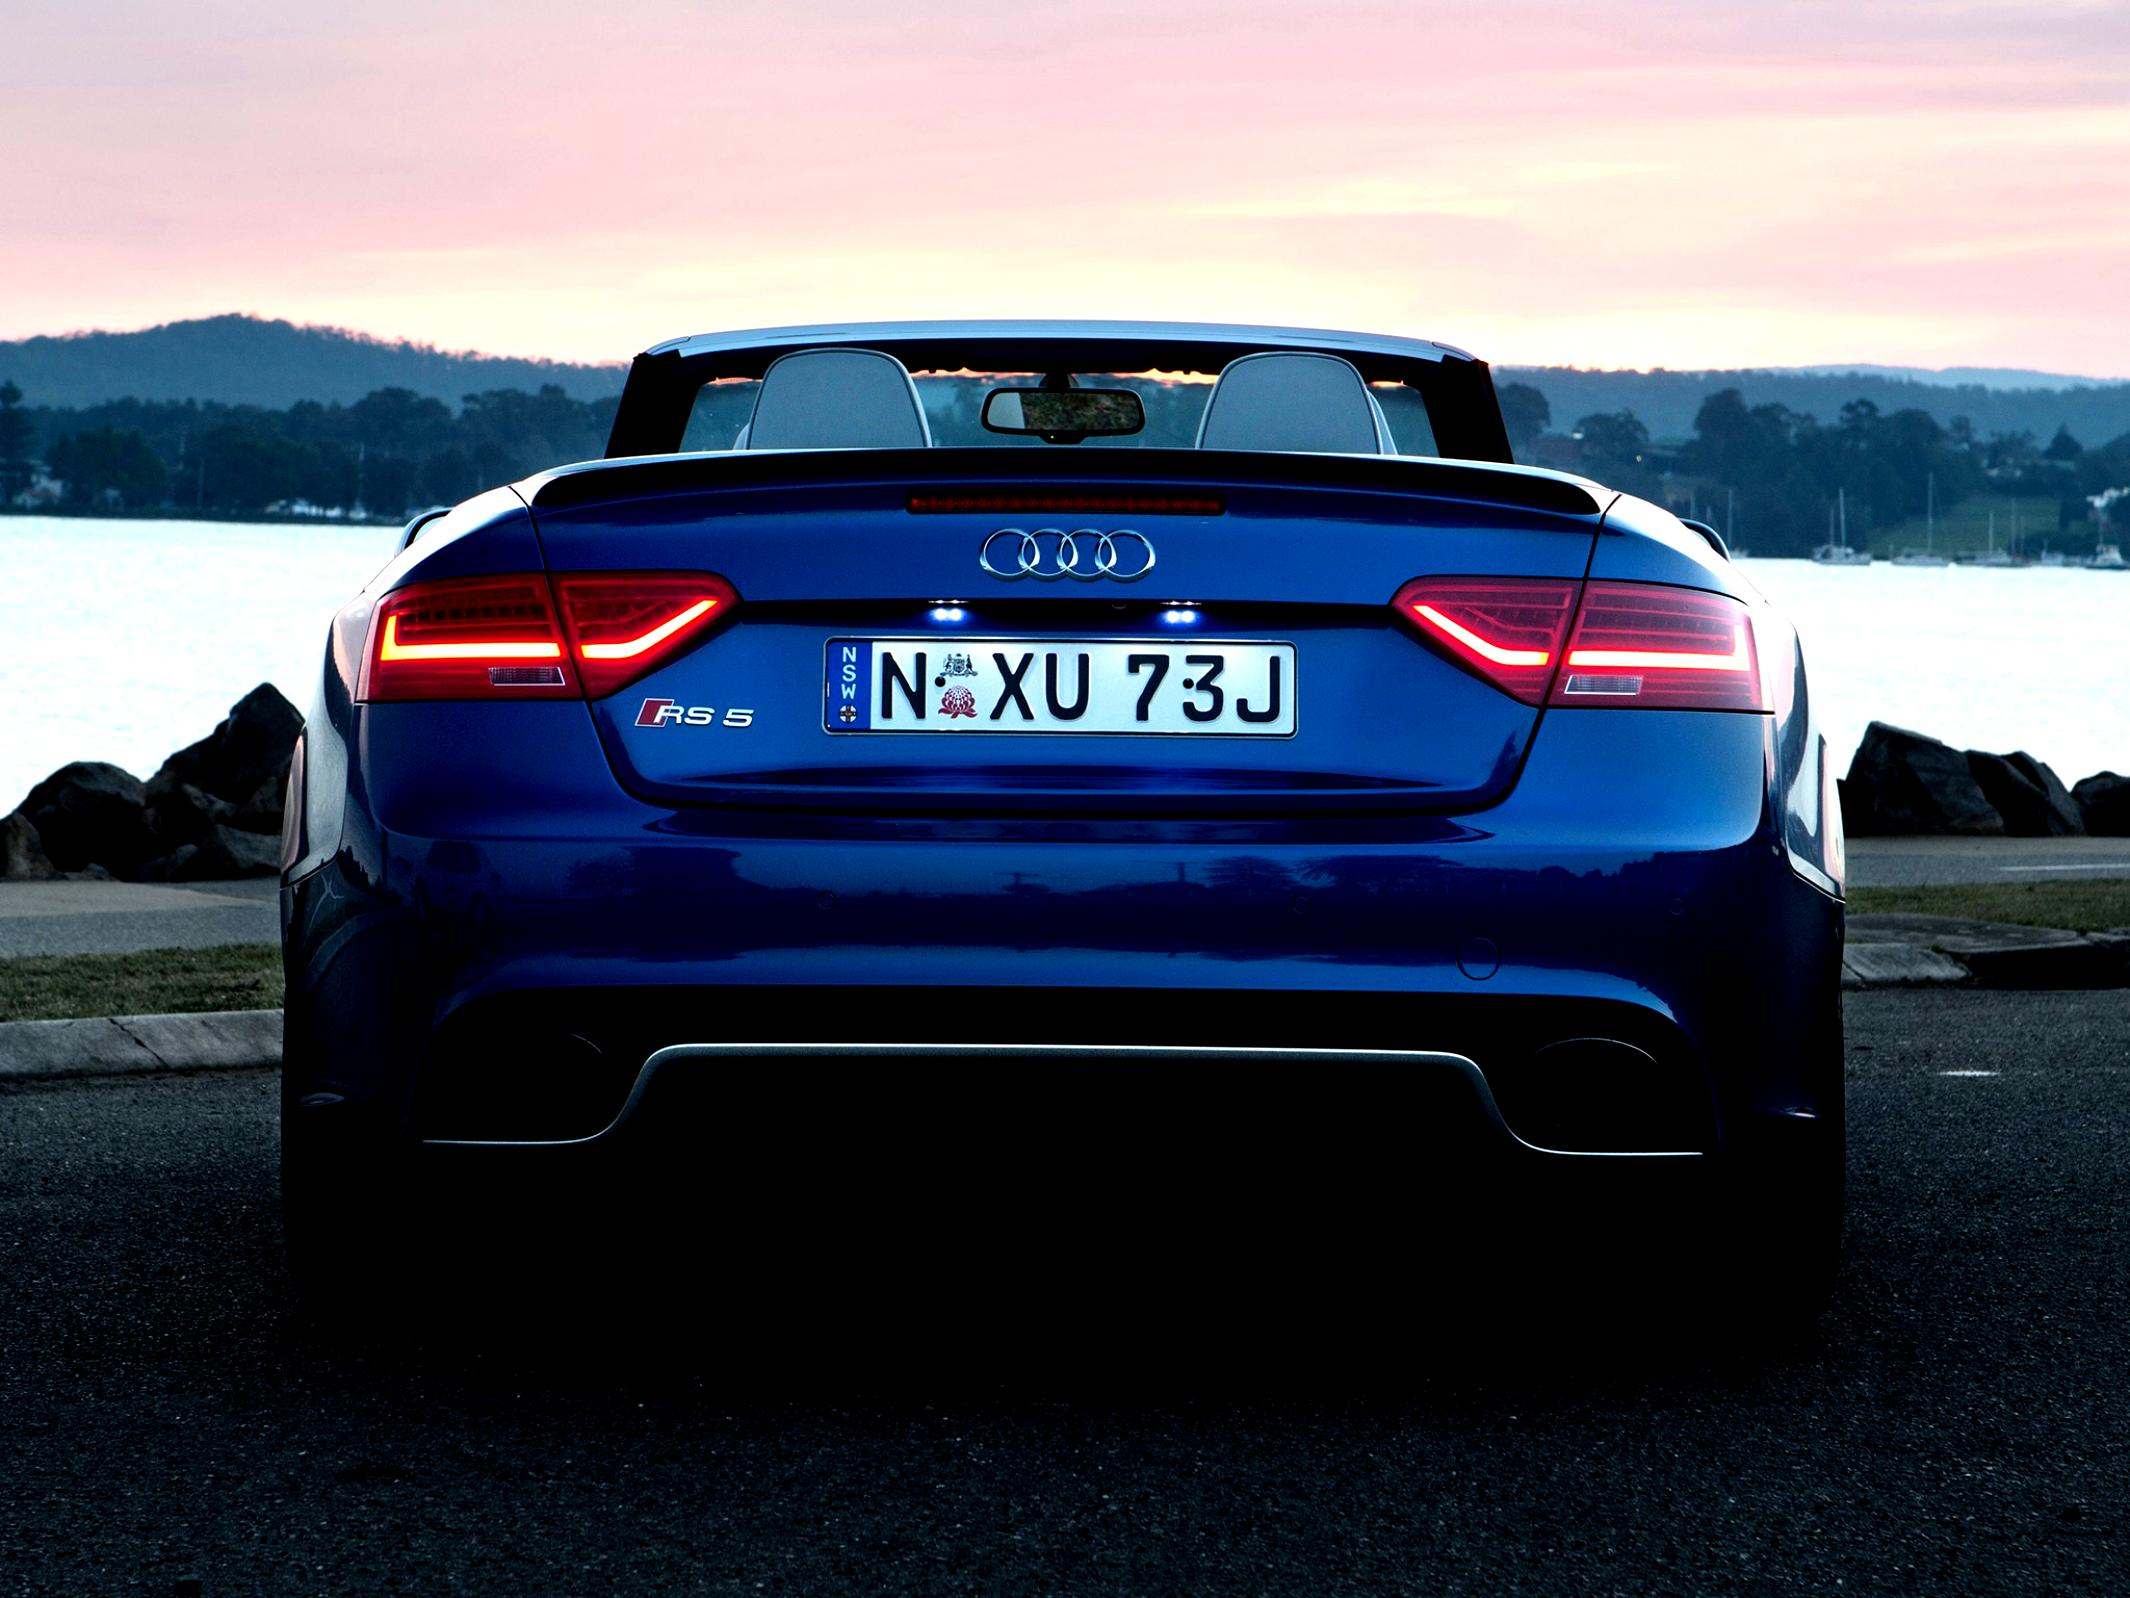 Audi RS5 Cabriolet 2013 #56